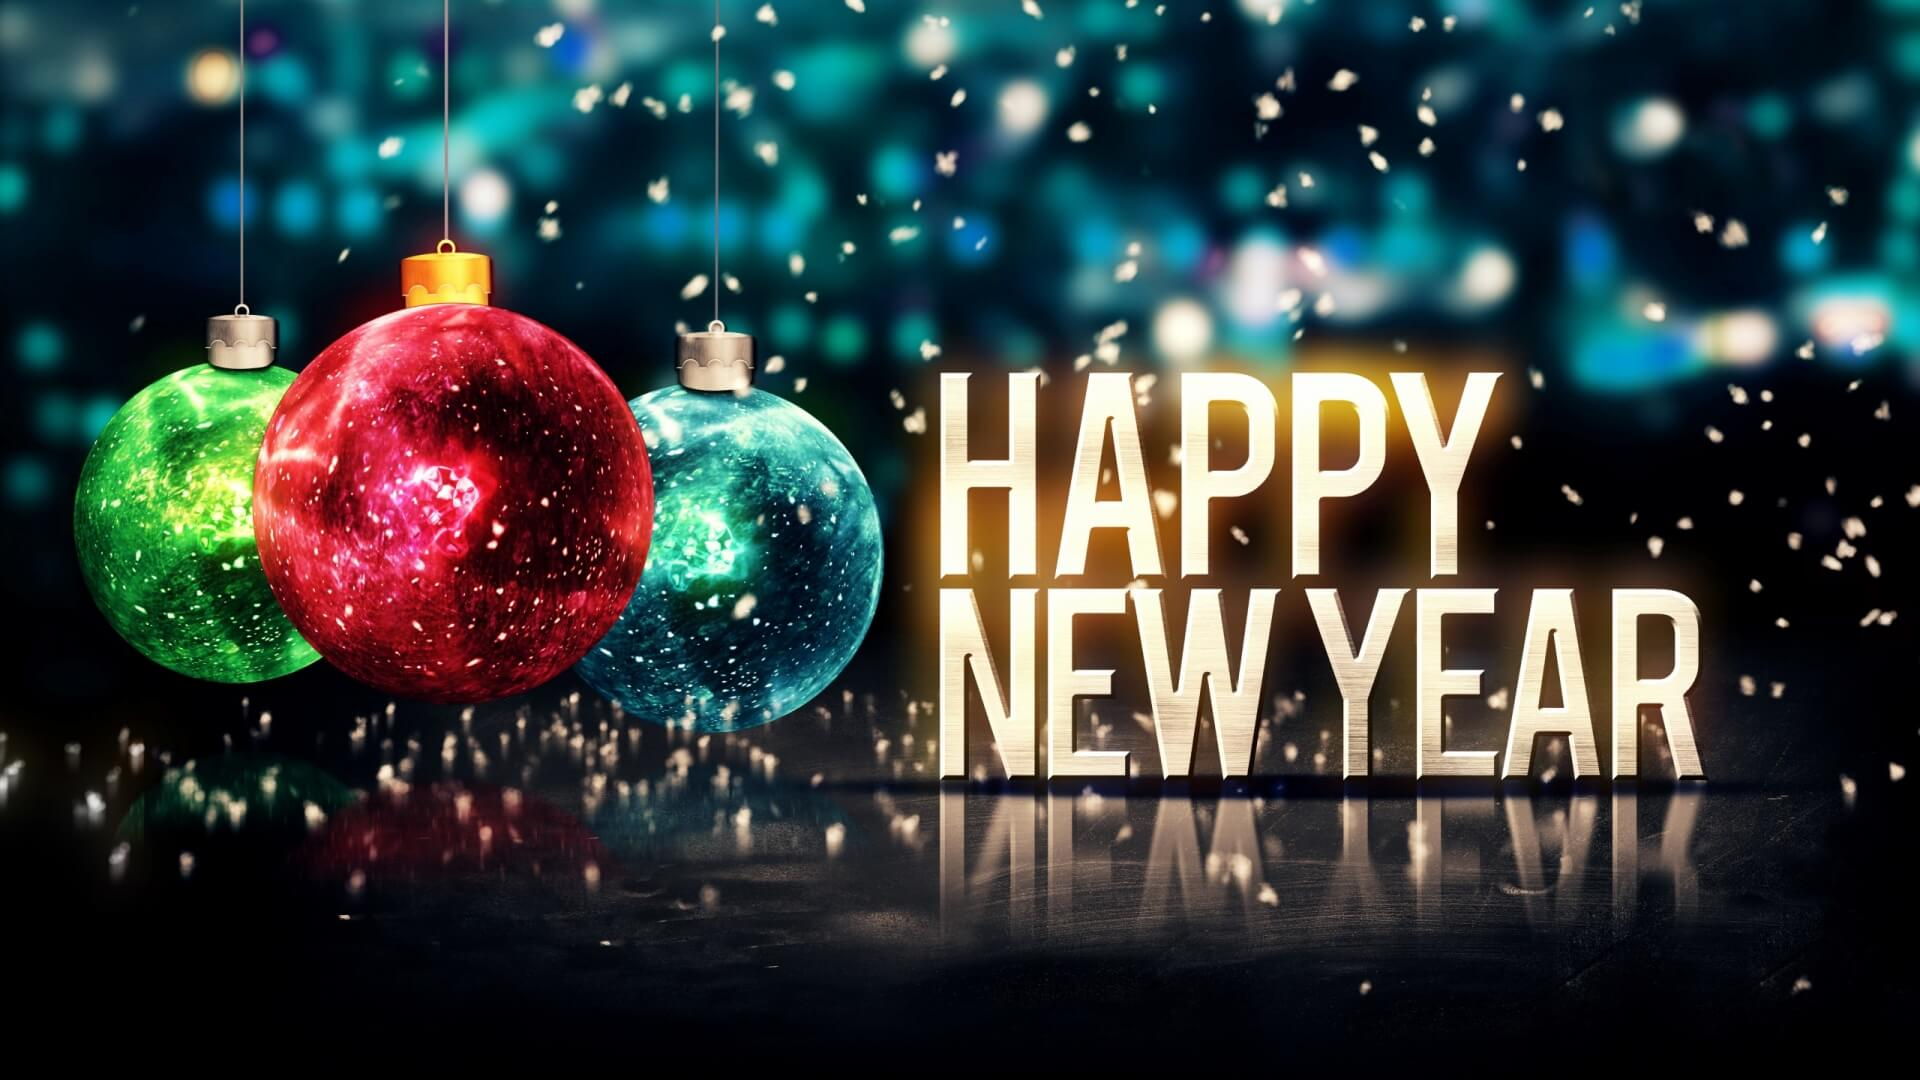 Happy New Year full hd wallpaper, photo, image, picture